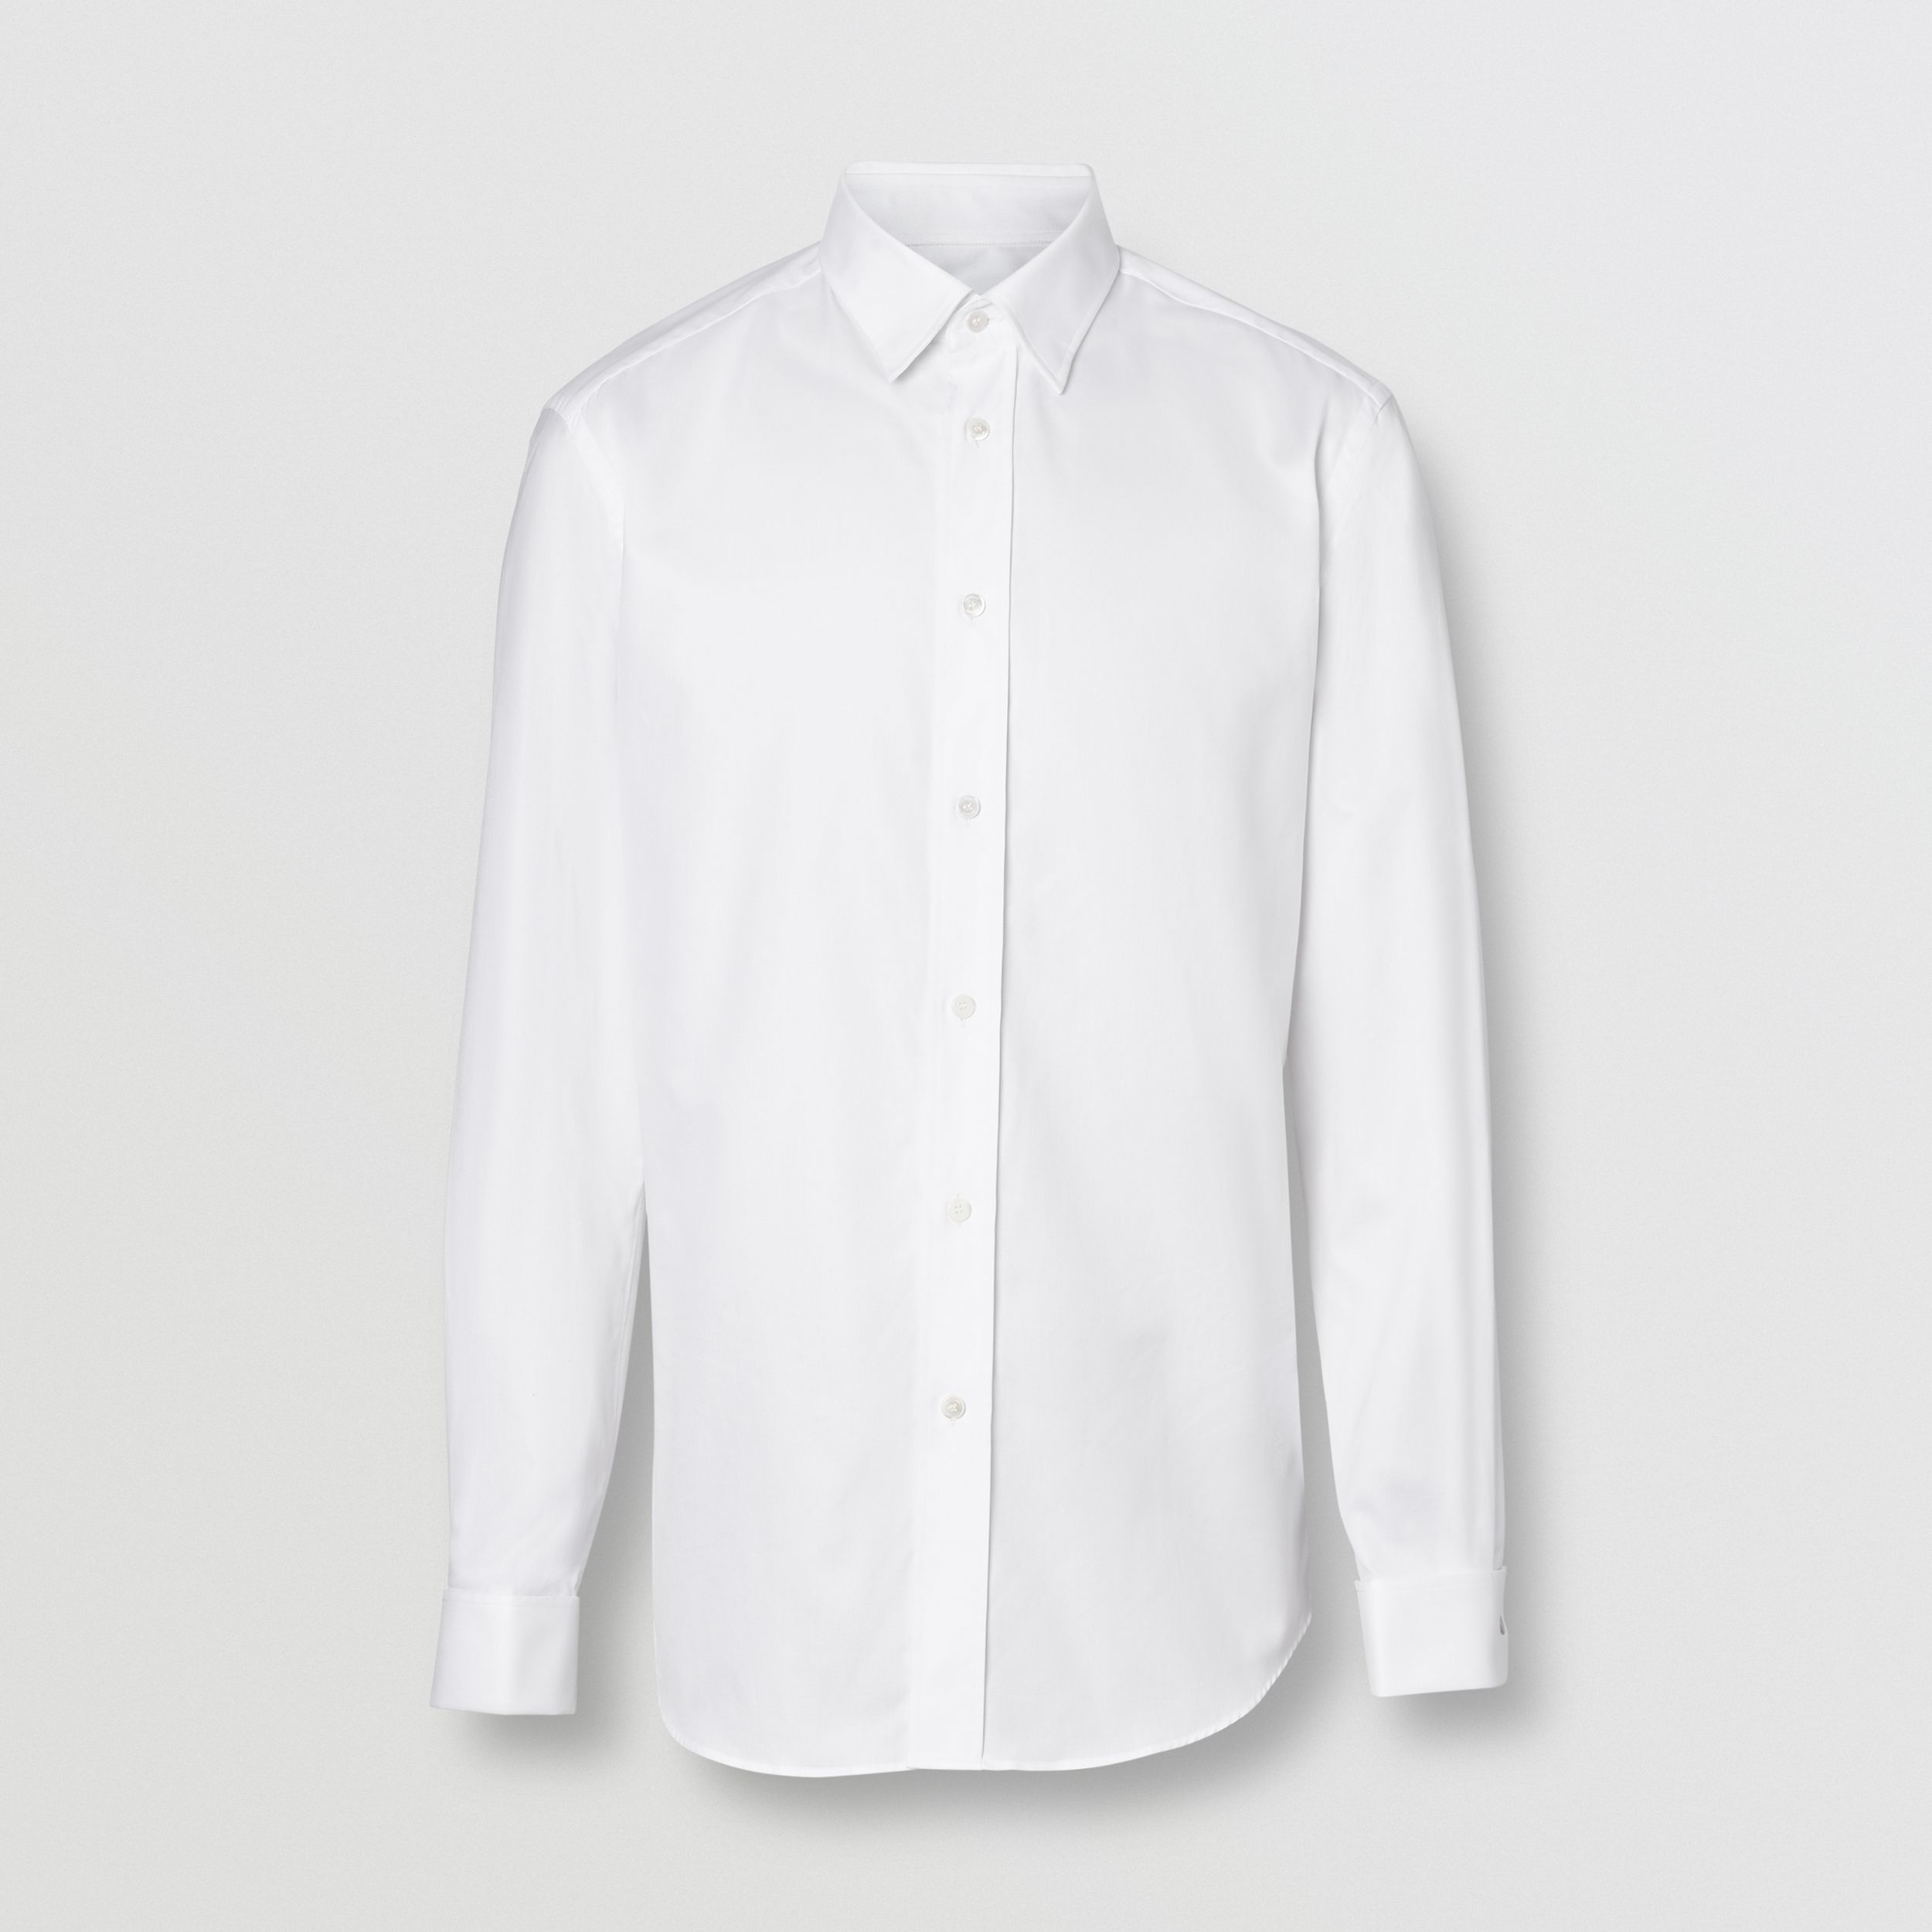 Classic Fit Monogram Motif Cotton Oxford Shirt in White - Men | Burberry - 4